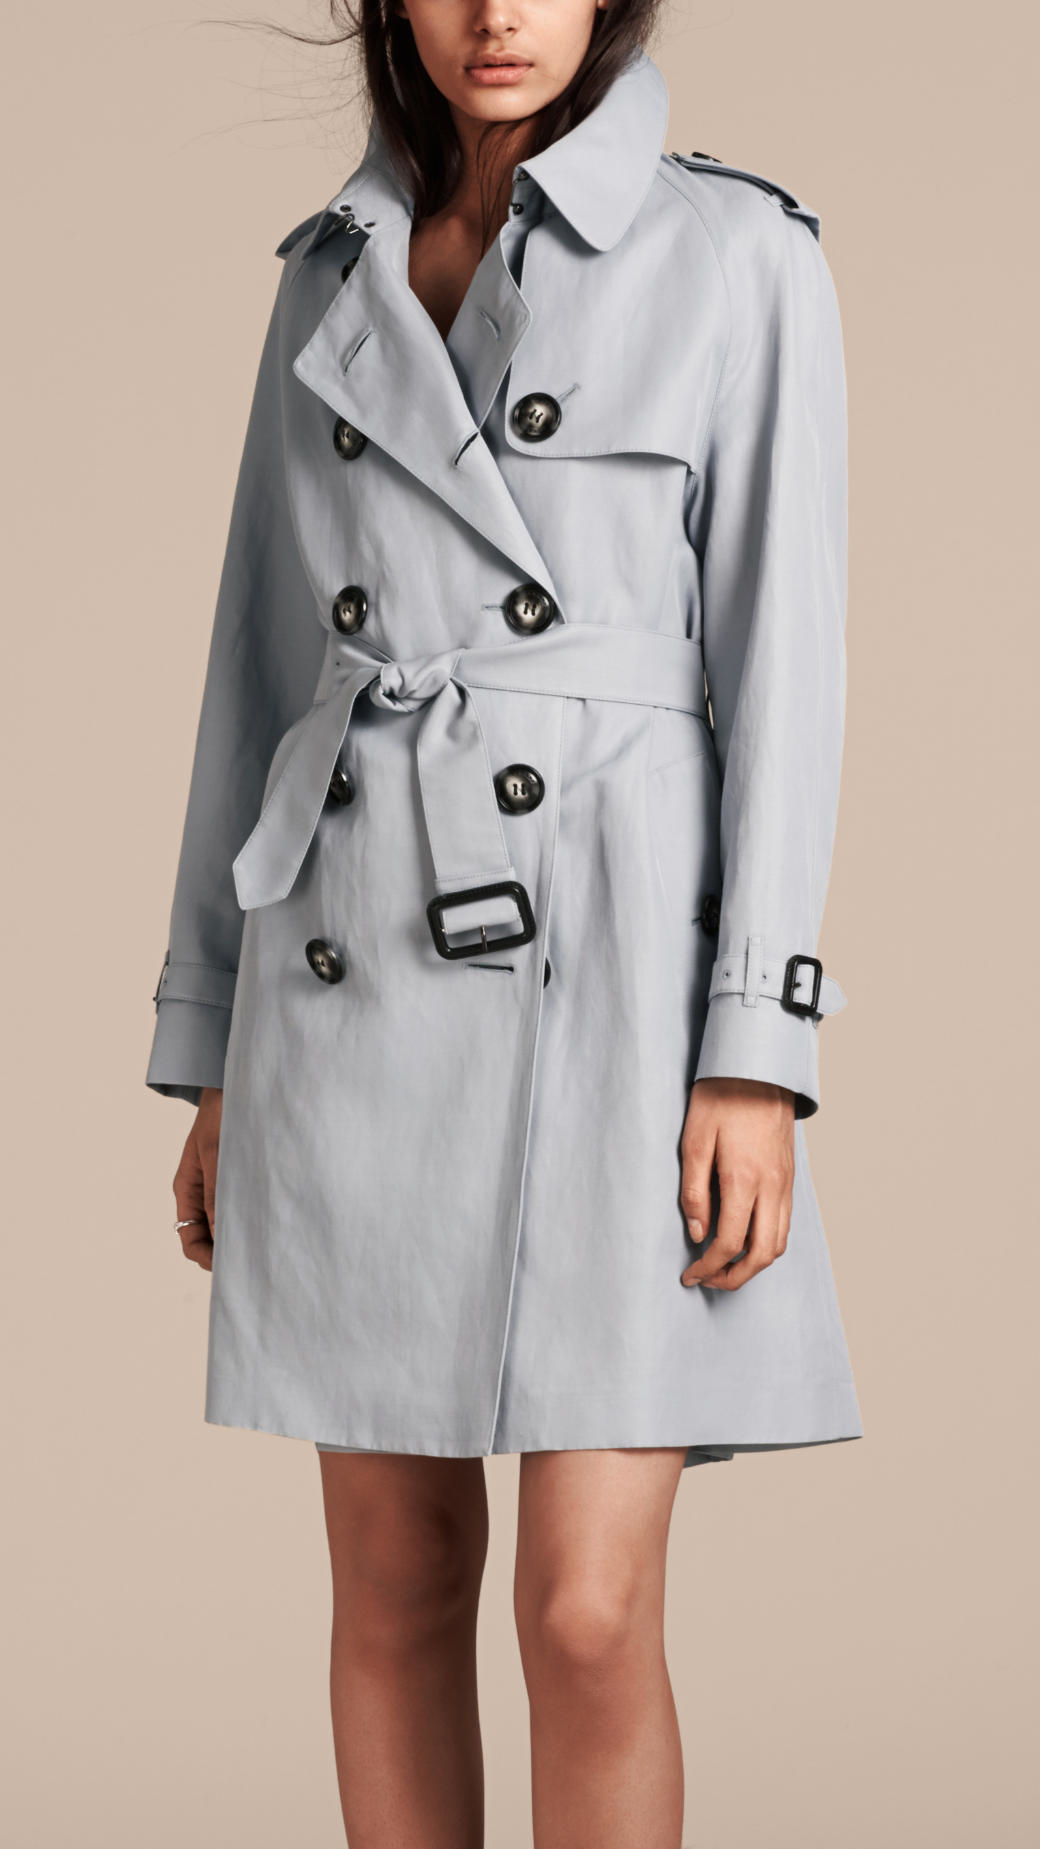 burberry-pale-lupin-blue-oversize-trench